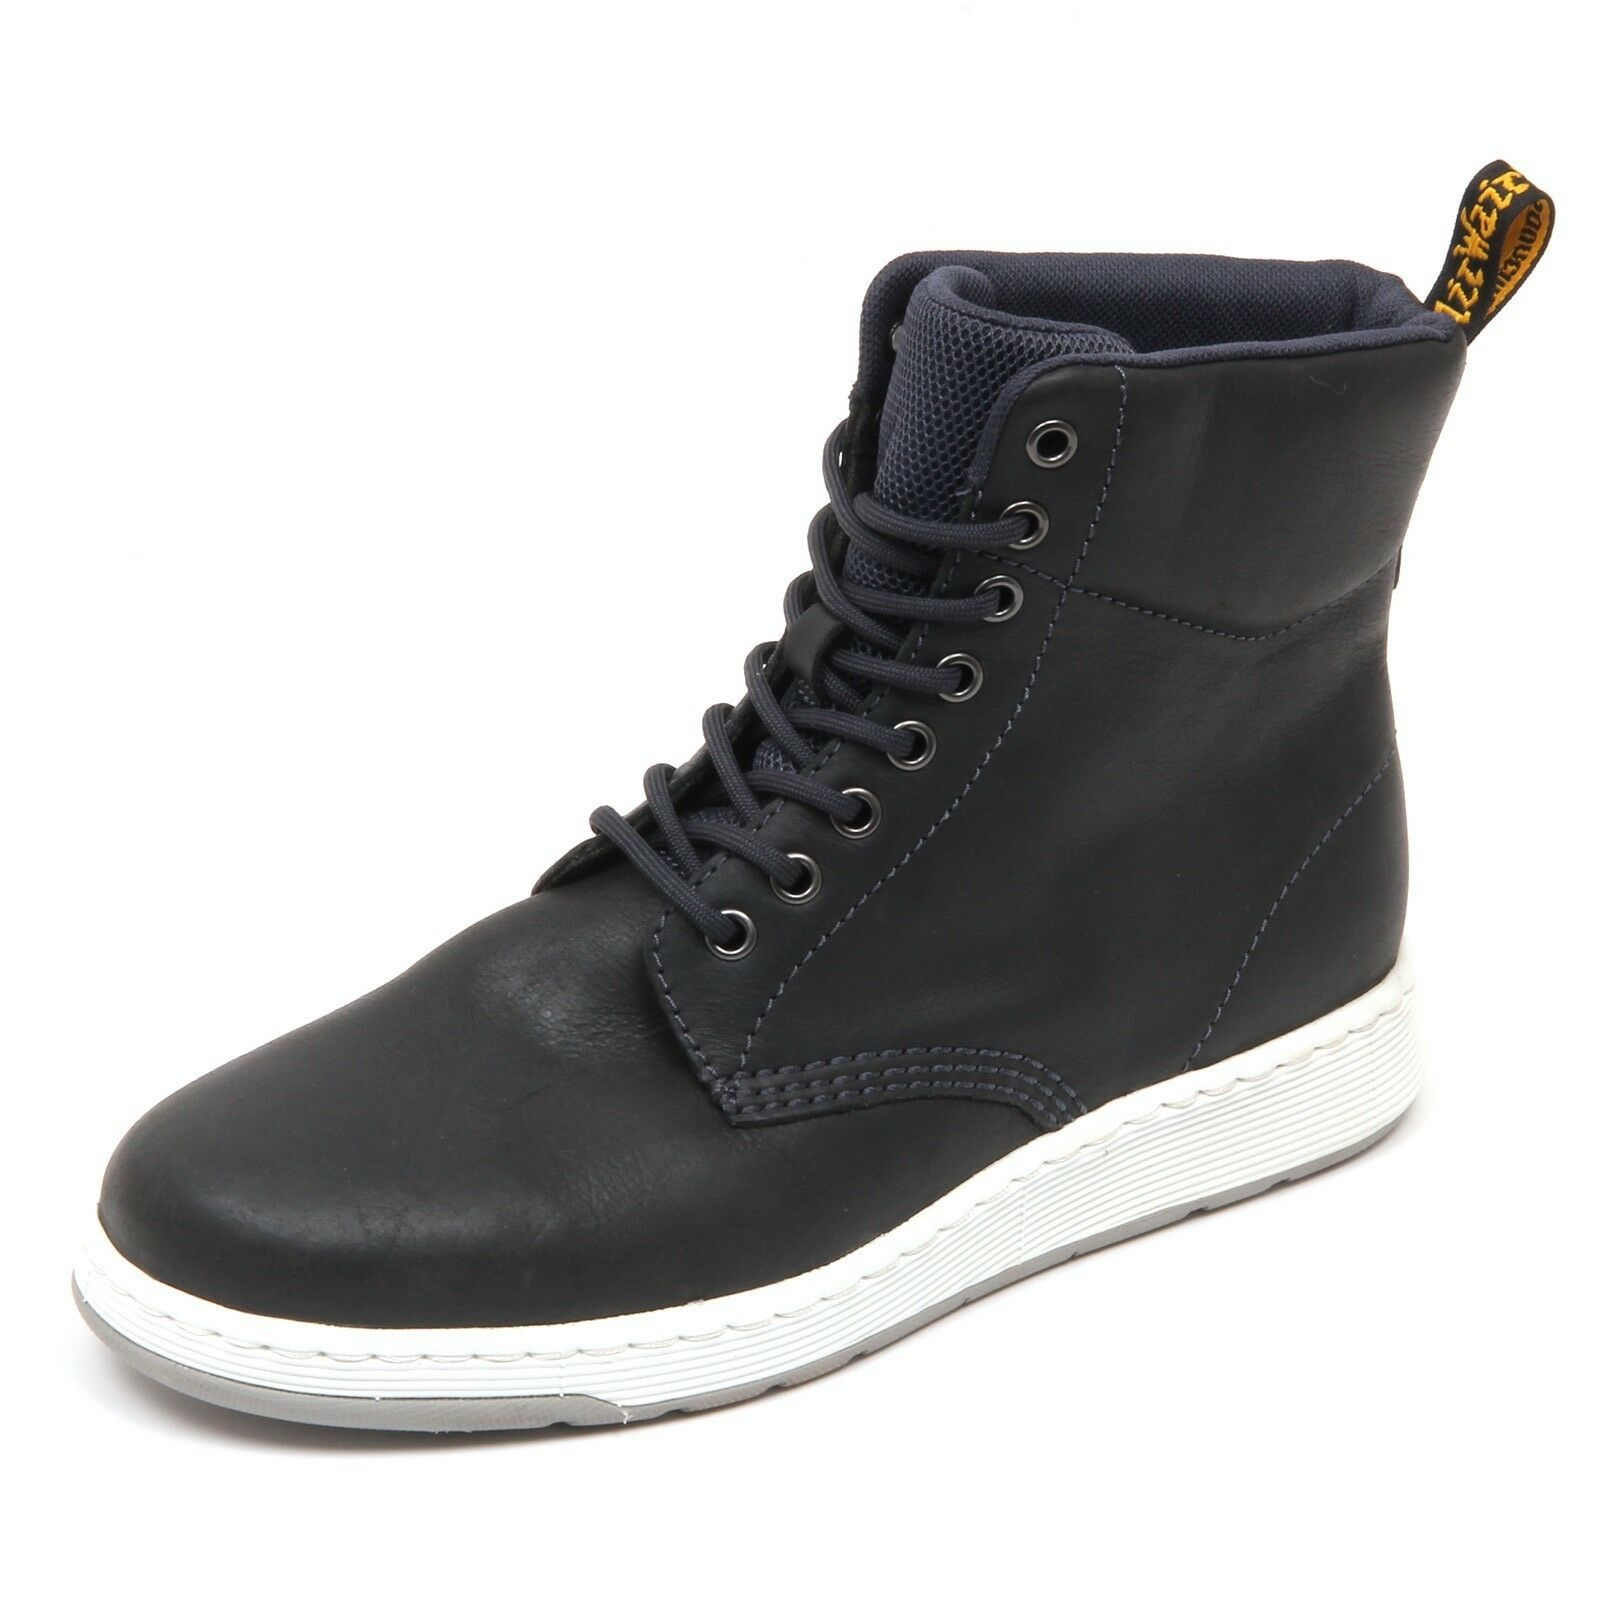 D4496 (without box) sneaker uomo DR. MARTENS blu/grigio boot shoe man